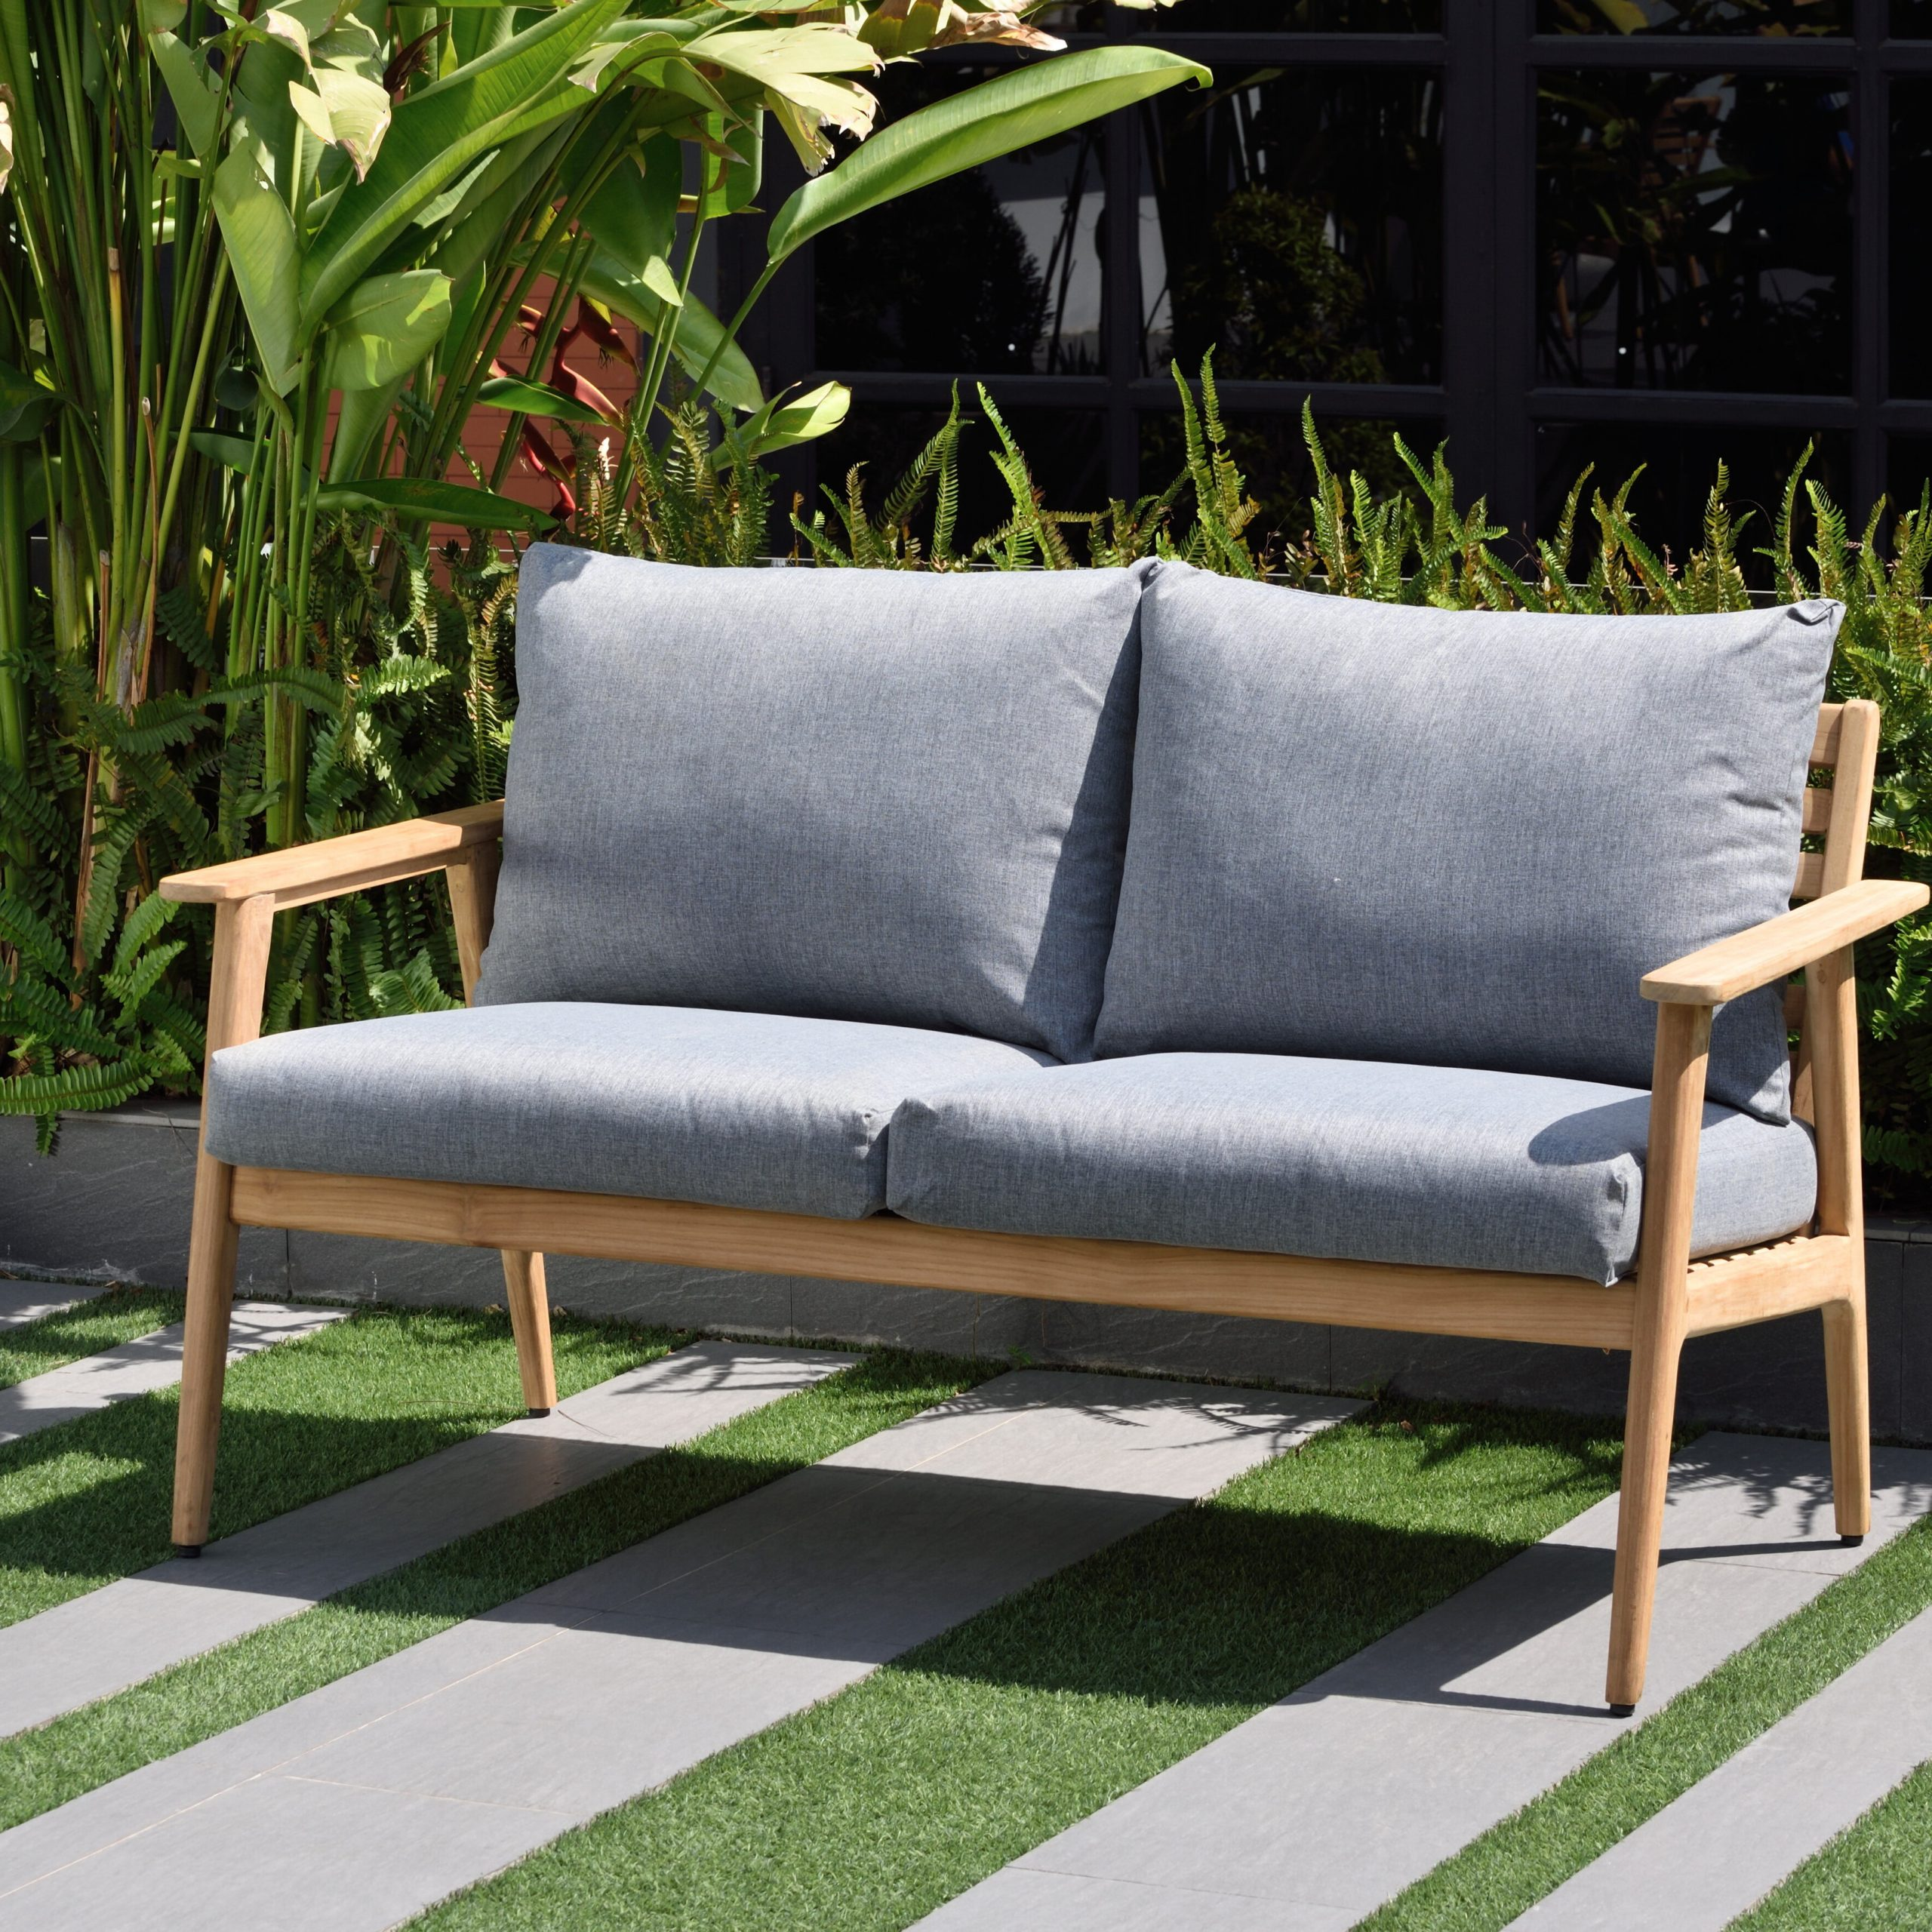 Jamilla Teak Patio Sofas With Cushion With Regard To Newest Brayden Studio Darrah Deep Seating Teak Patio Sofa With (View 9 of 25)